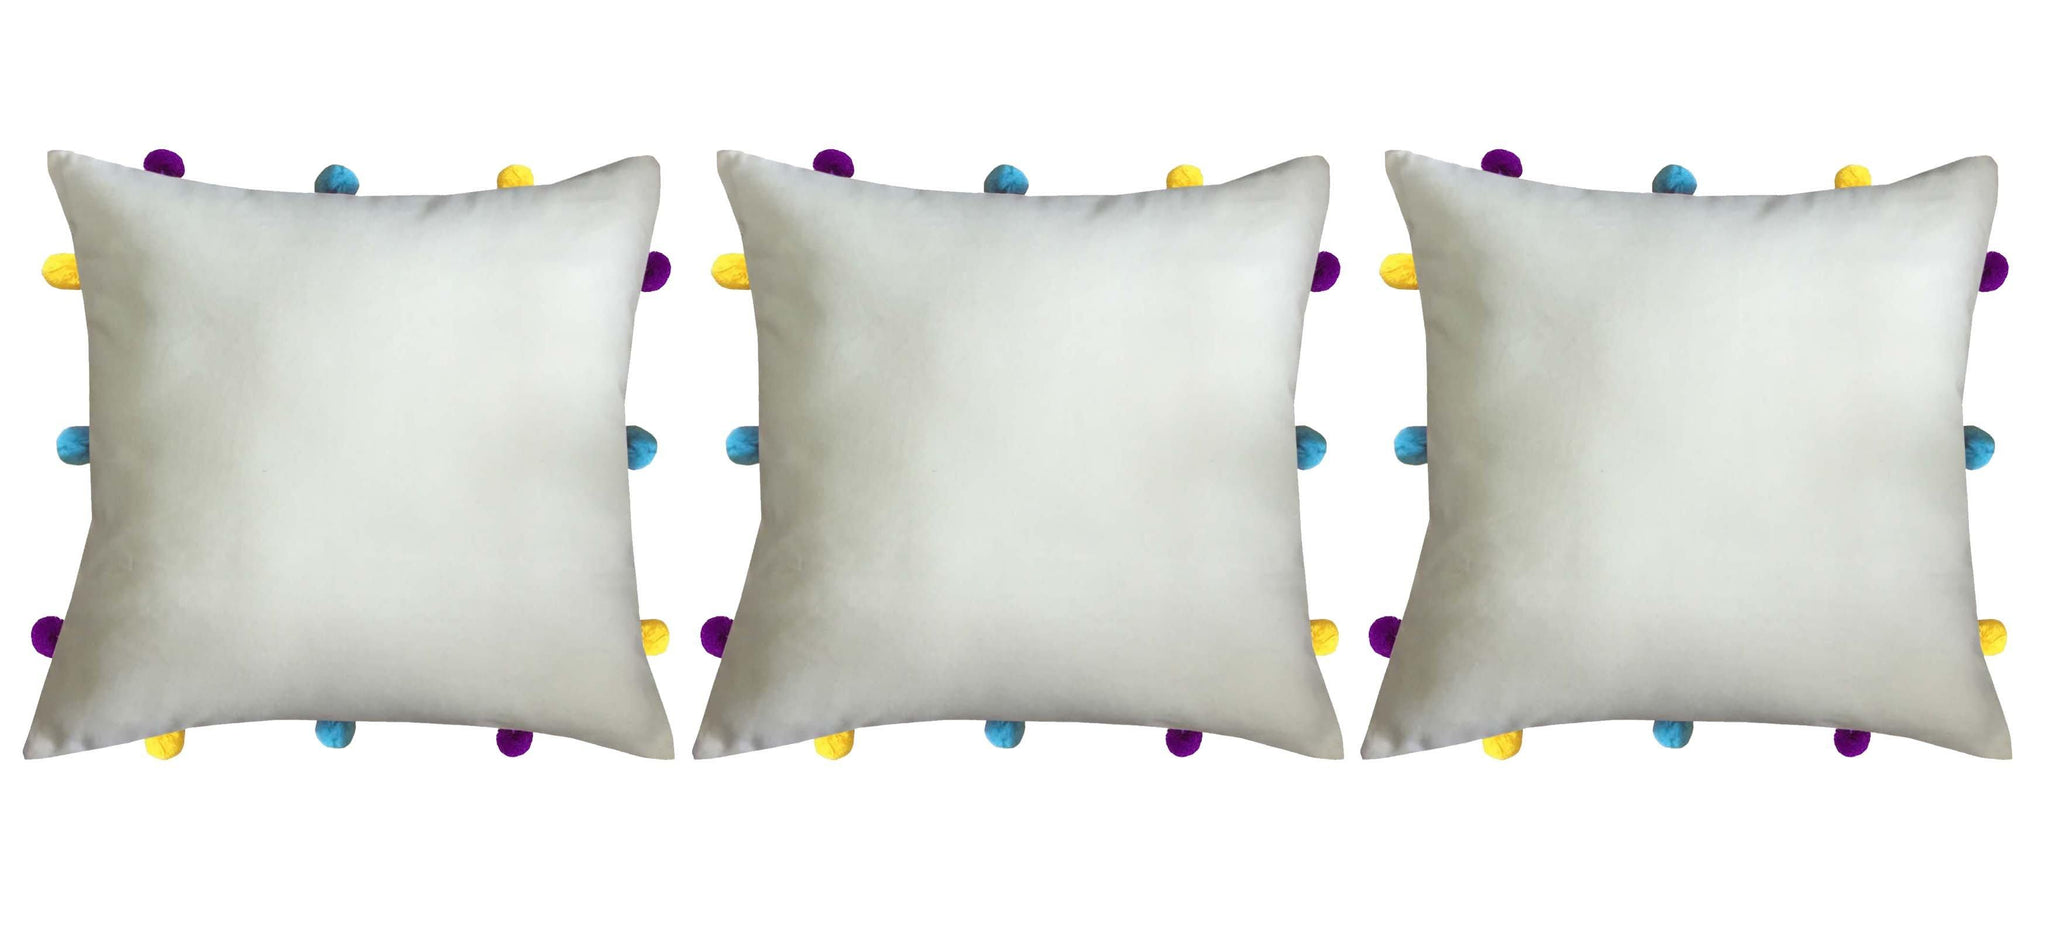 "Lushomes Ecru Cushion Cover with Colorful pom poms (3 pcs, 12 x 12"") - Lushomes"